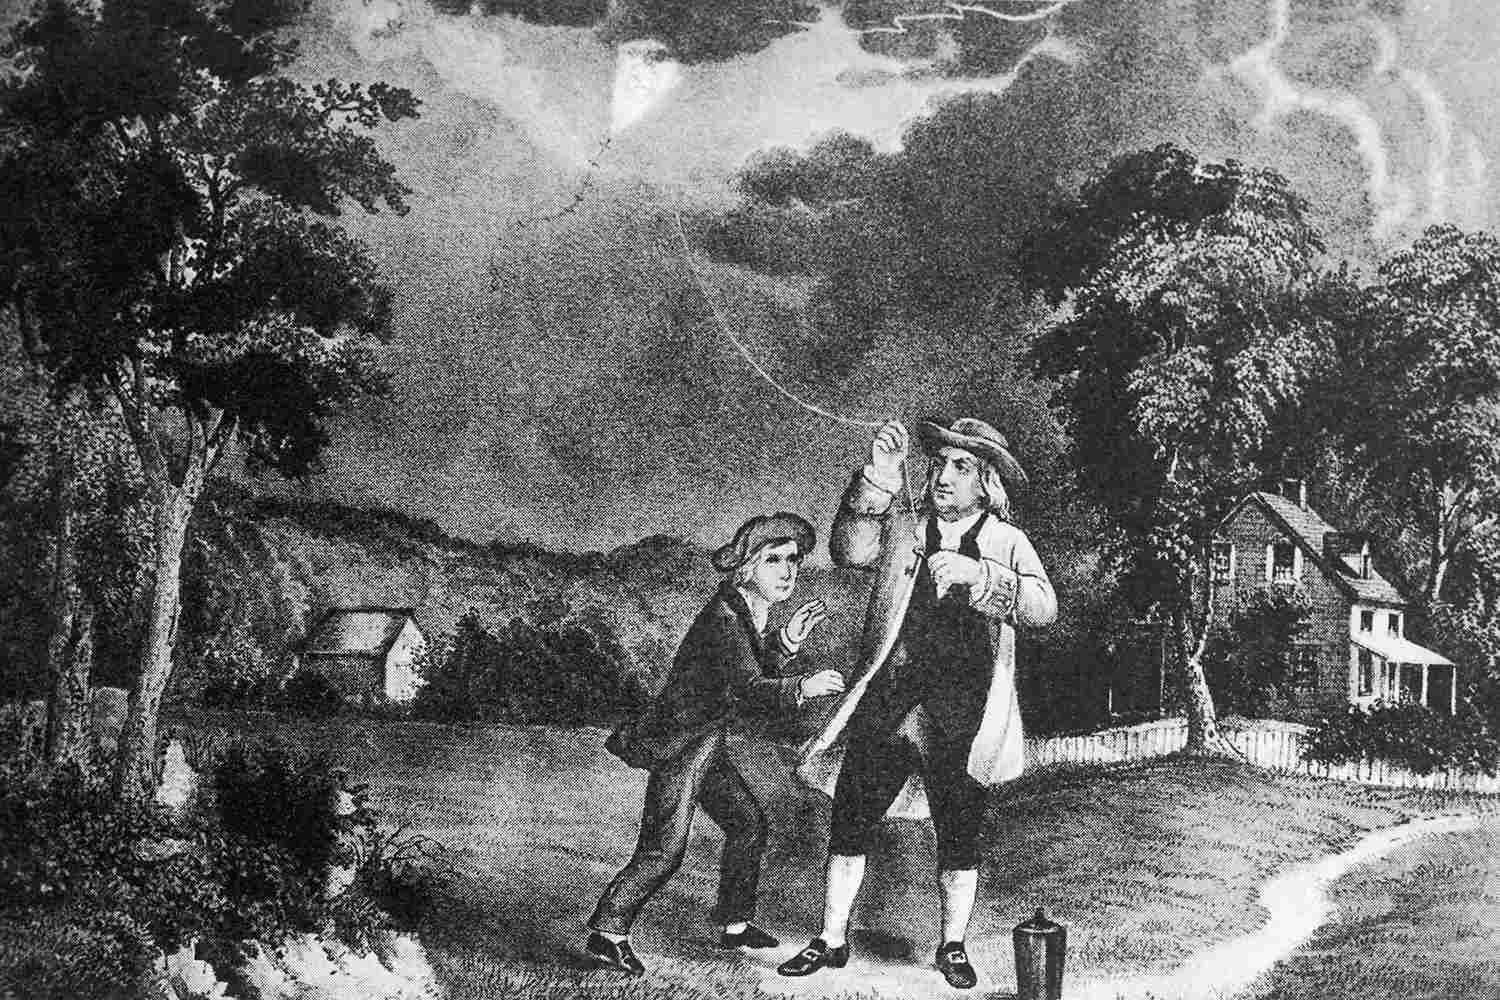 Pencil sketch Benjamin Franklin flying a kite during a storm.